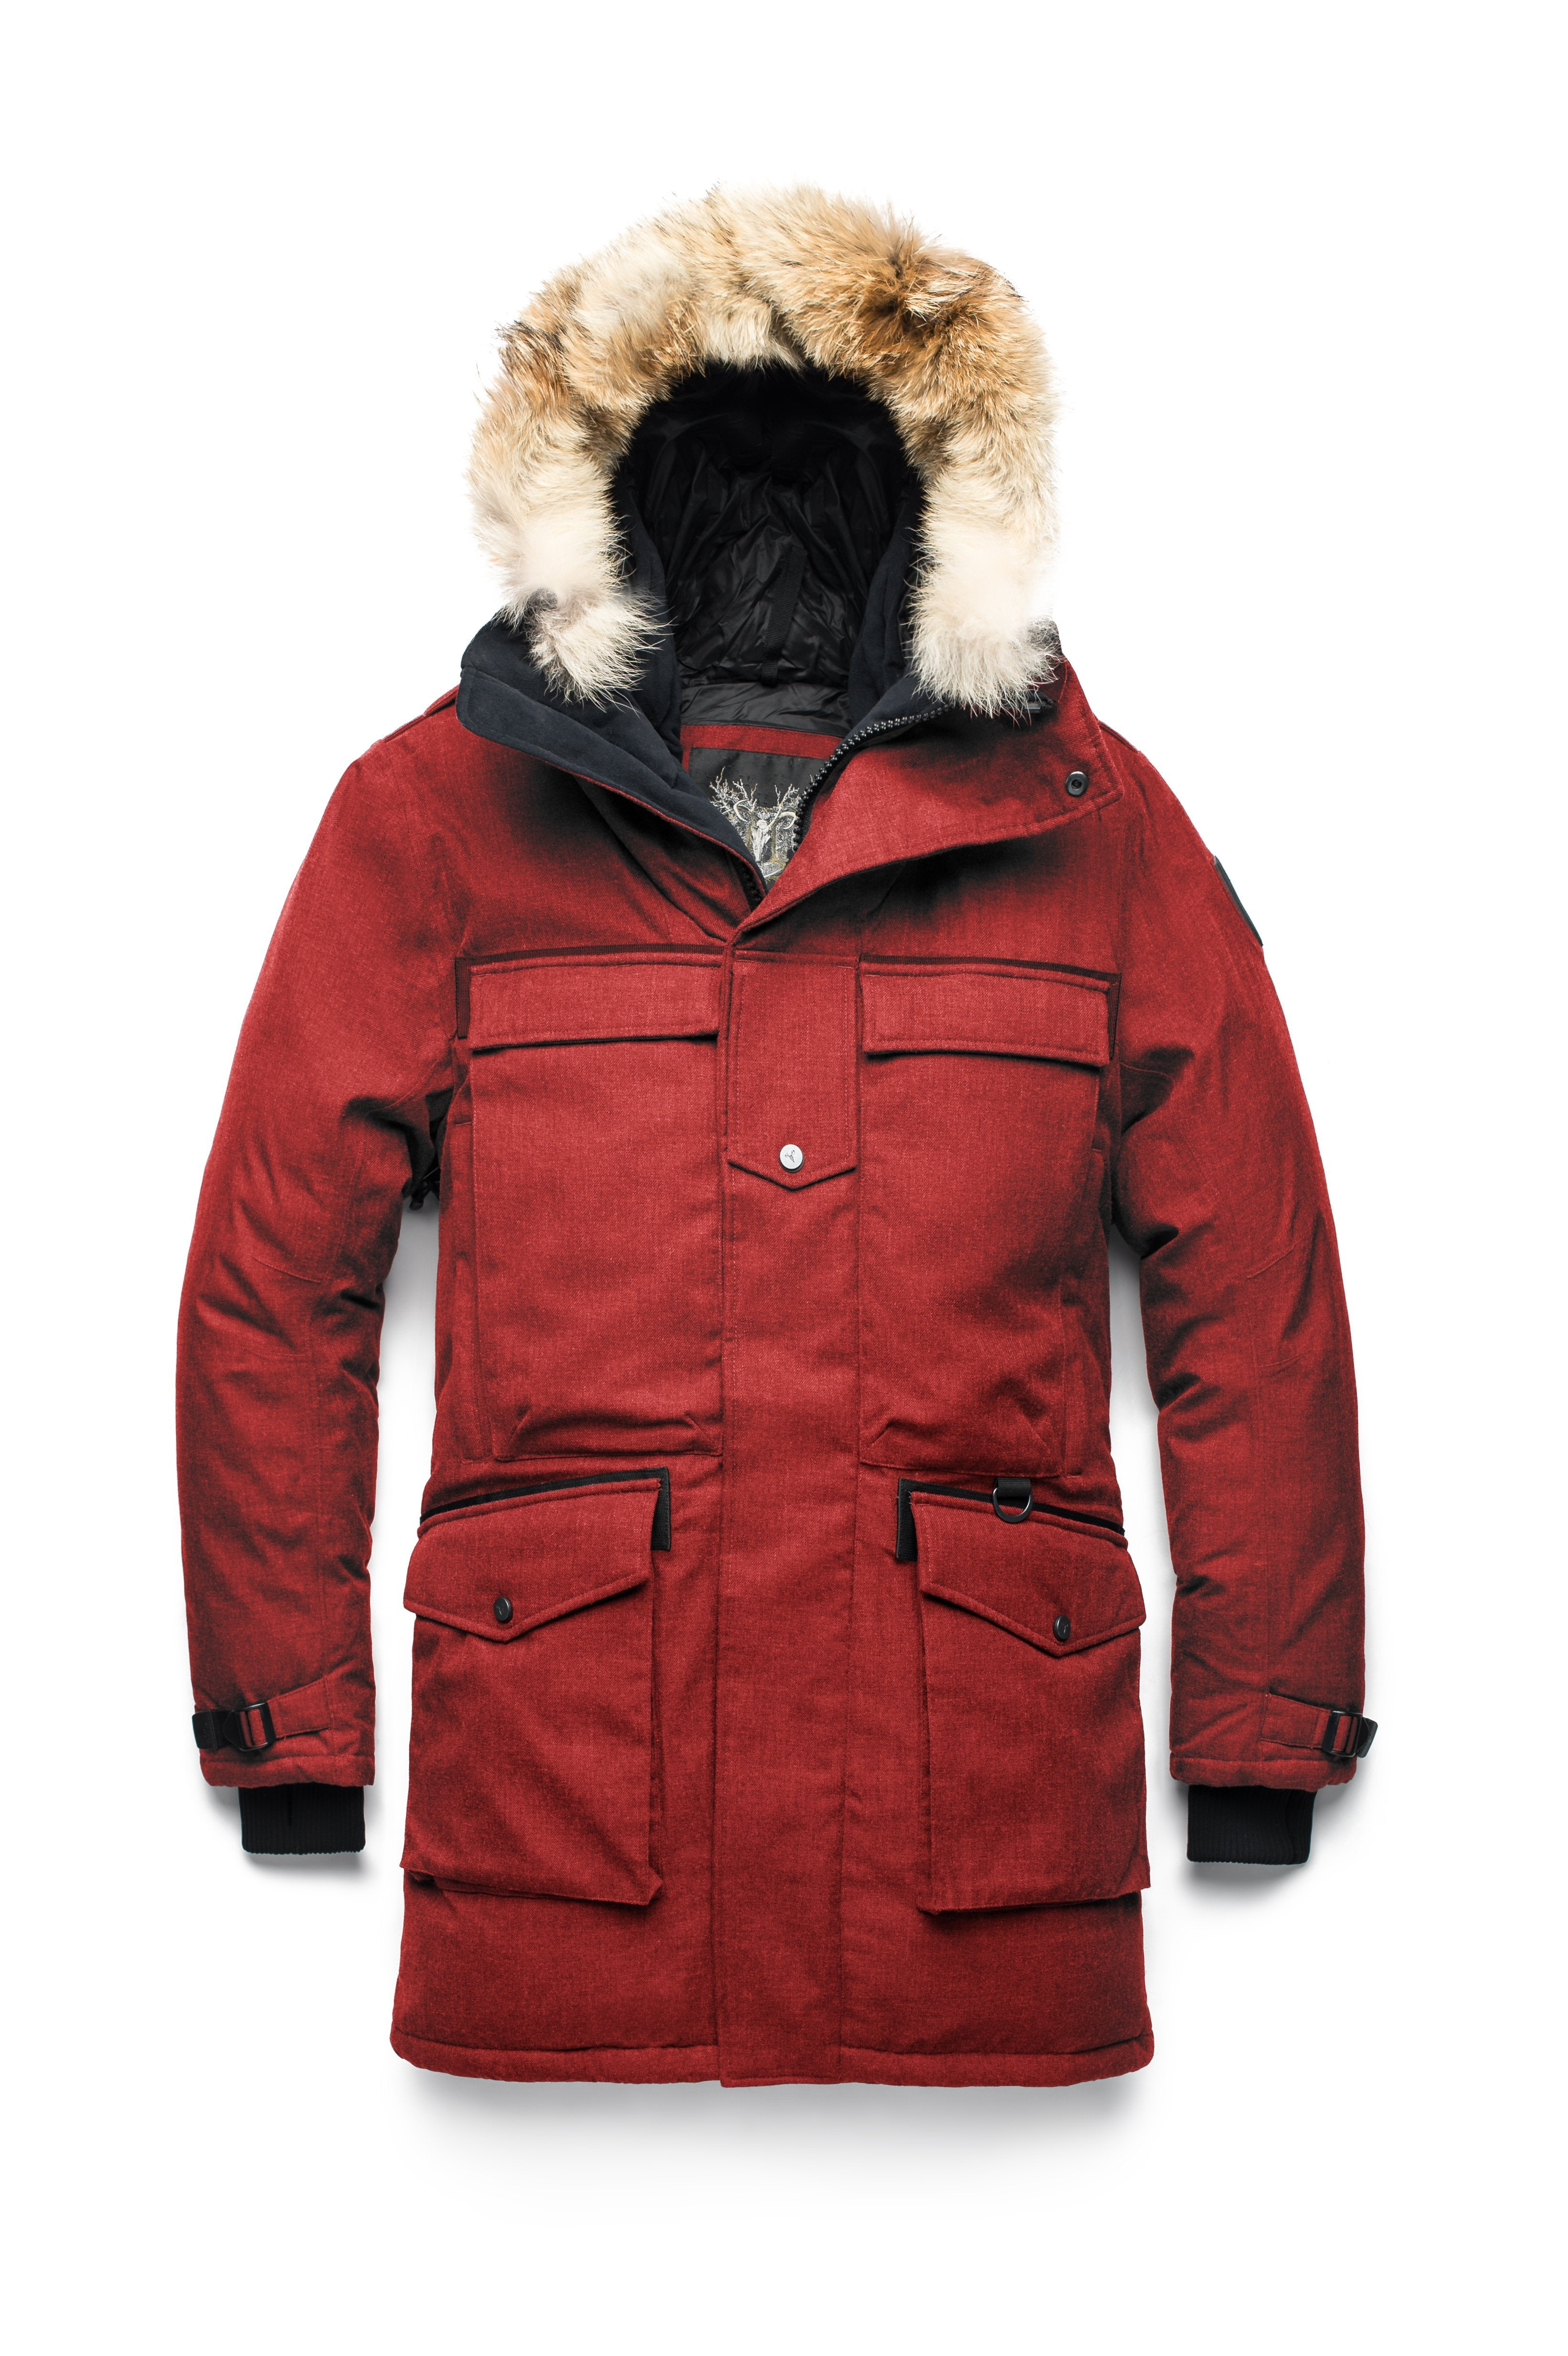 Men's extreme wamrth down filled parka with baffle box construction for even down distribution in H Red | color